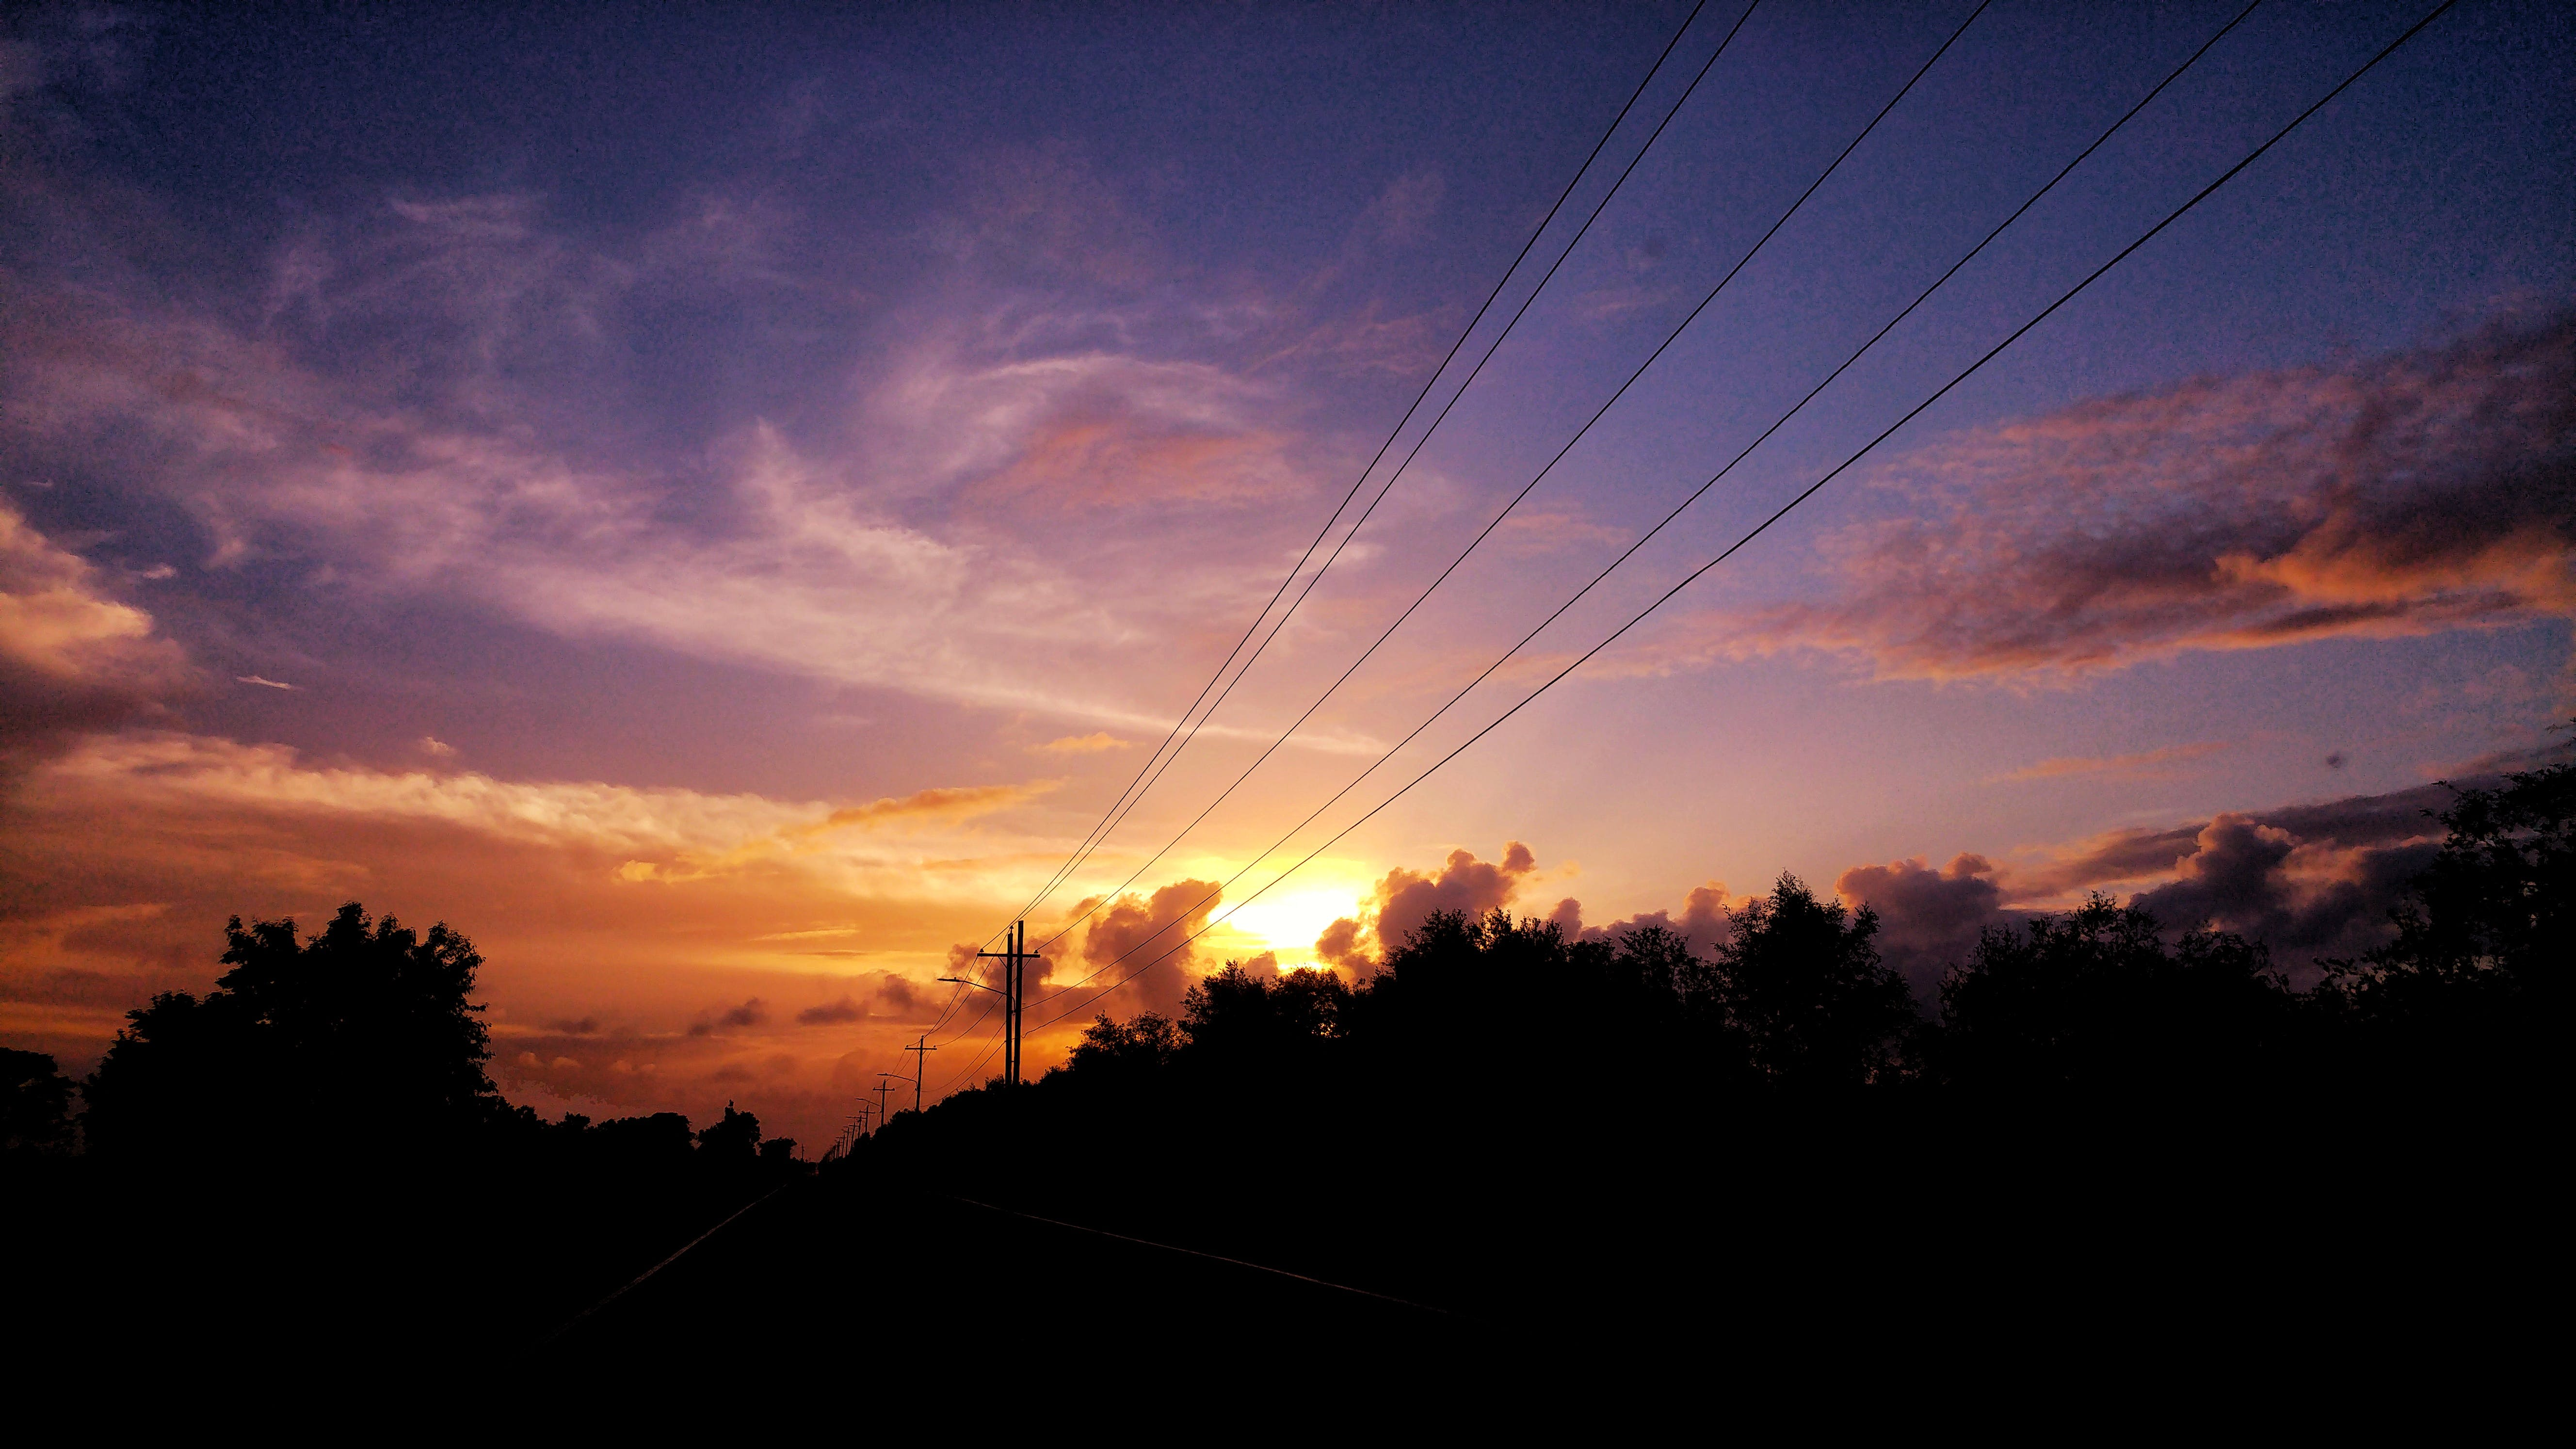 Silhouette of Trees and Cable Post during Golden Hour